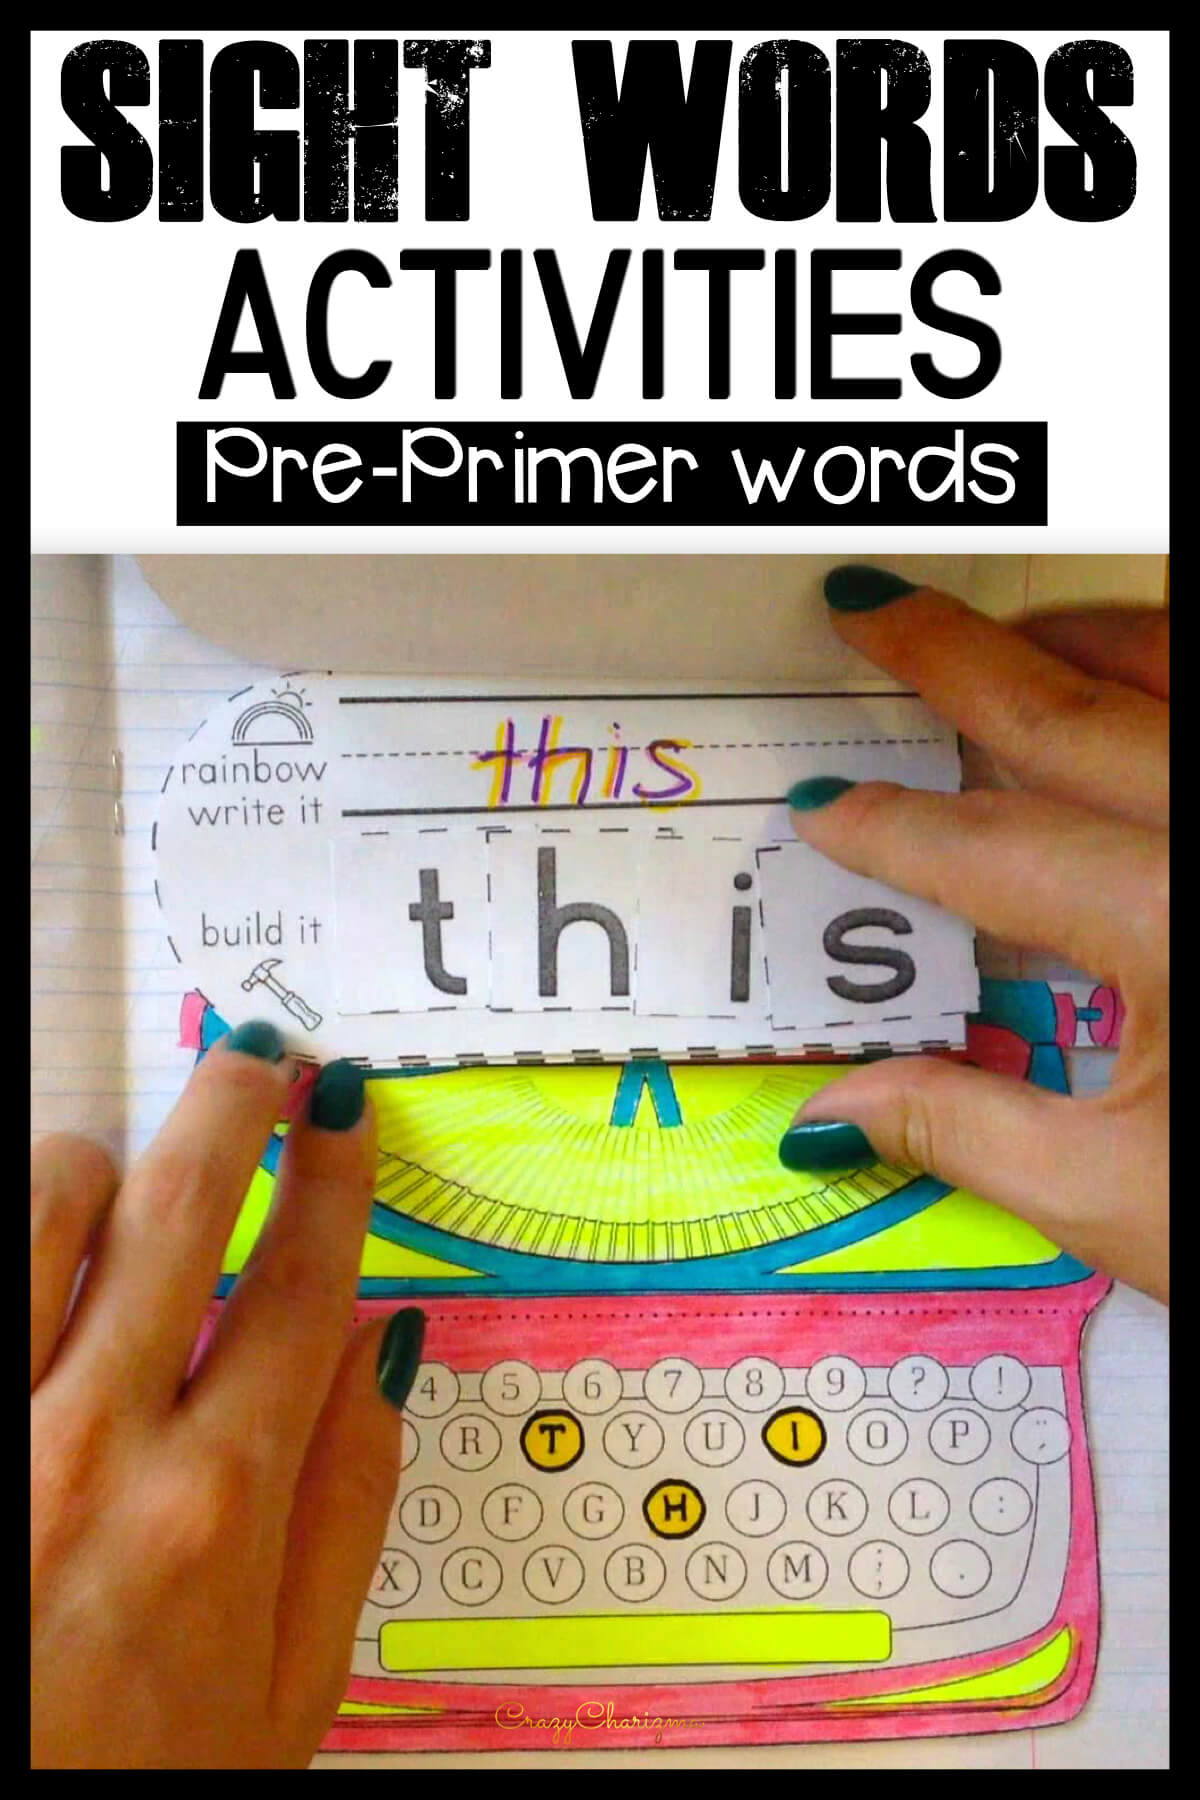 Need lots of activities to master sight words from pre-primer list? This set provides practice at the beginning reading level, and introduces 40 of the most common sight words. Kids will read more fluently and write with greater ease.